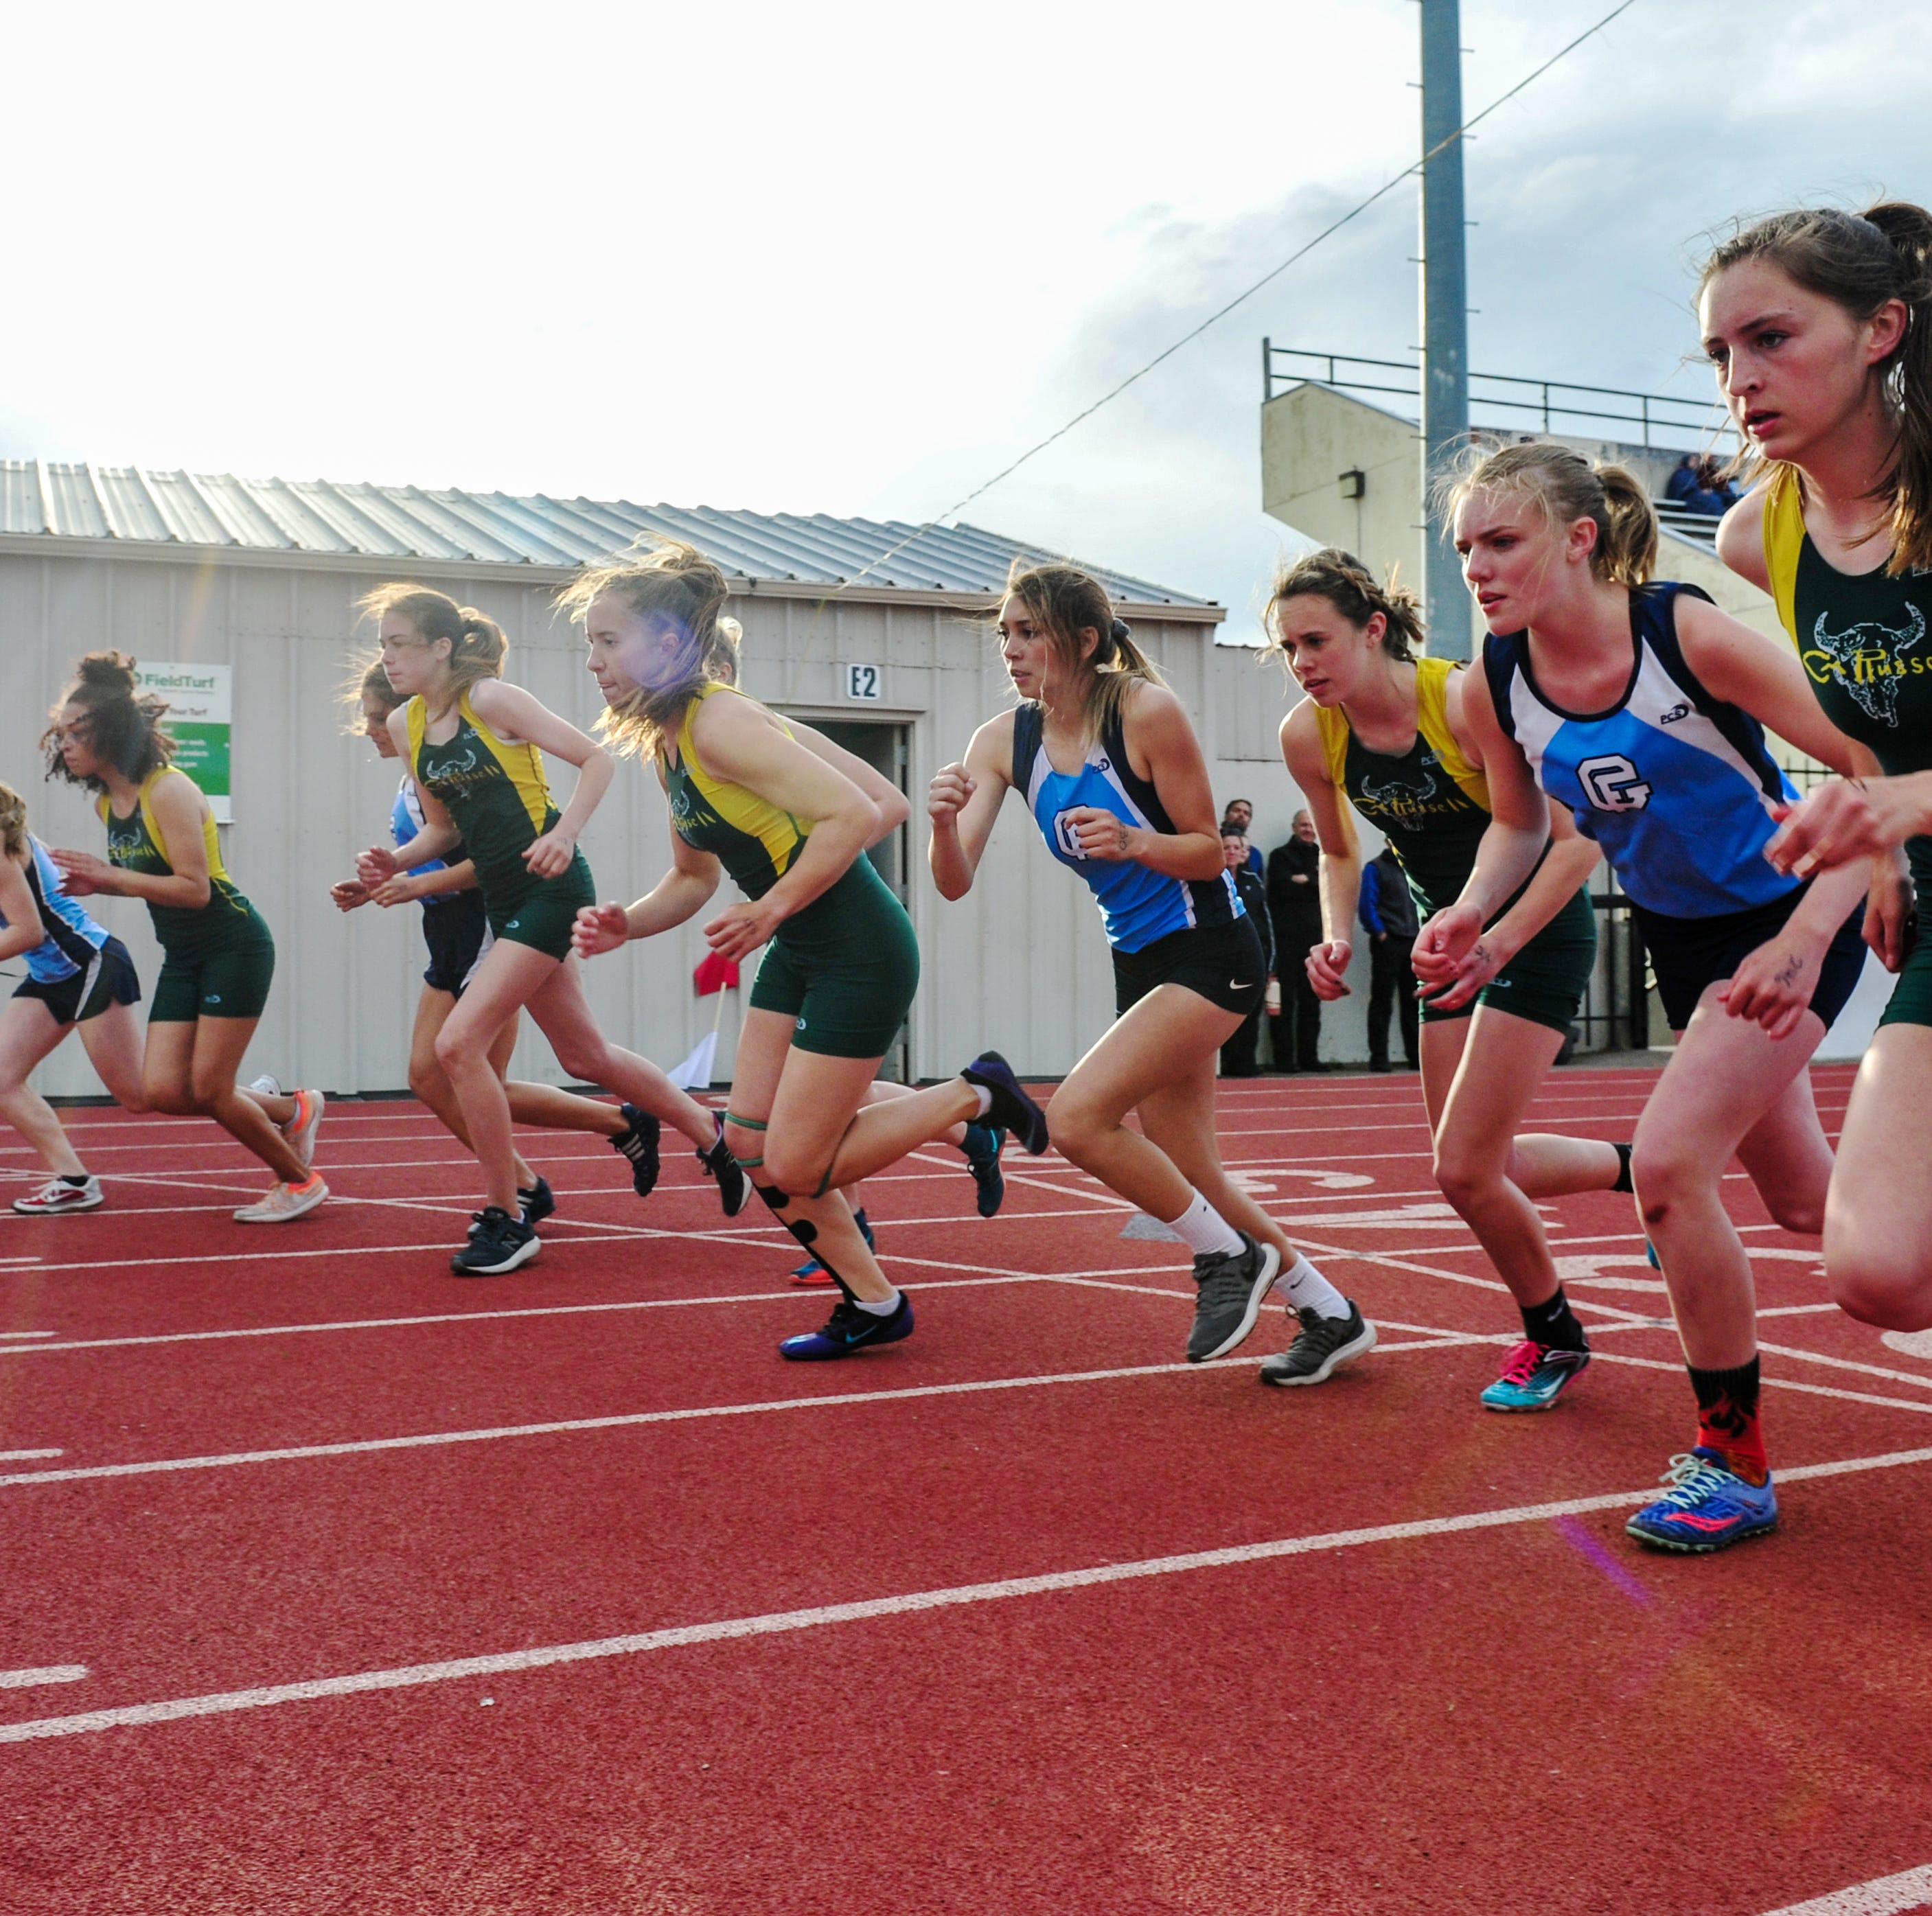 Rustlers sweep Bison in crosstown track and field meet